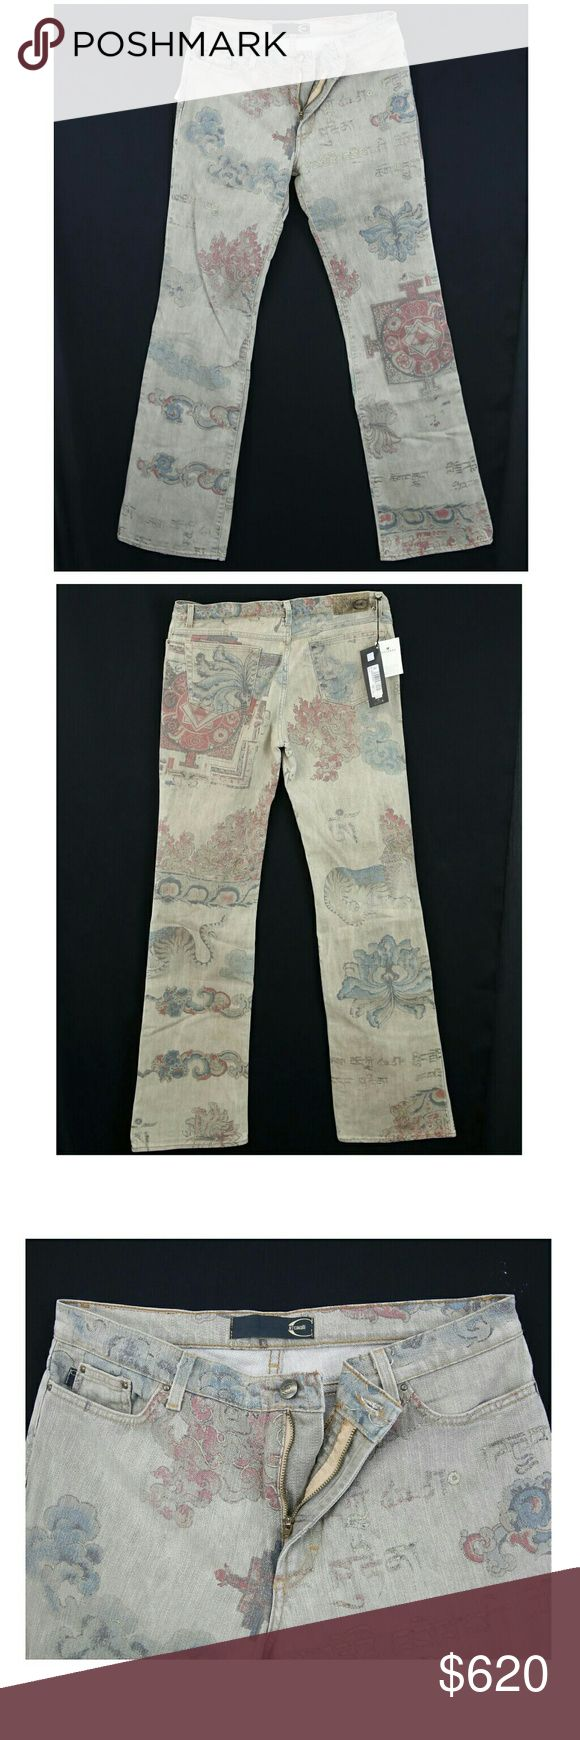 """Woman's Just Cavalli print Jean's-Size 30/35 NEW Woman's Designer Just Cavalli Jean's-Size 30 - $620 Retail  NWT  Made in Italy. In Stock by Friday!   Tag Size 34 Please view measurements  Measures: Waist 30"""", Length 43"""", Inseam 35"""", Rise 9"""" Material: 97% Cotton, 3% Fibre   Retail $620.00  Condition: New with Tags Just Cavalli Jeans Boot Cut"""